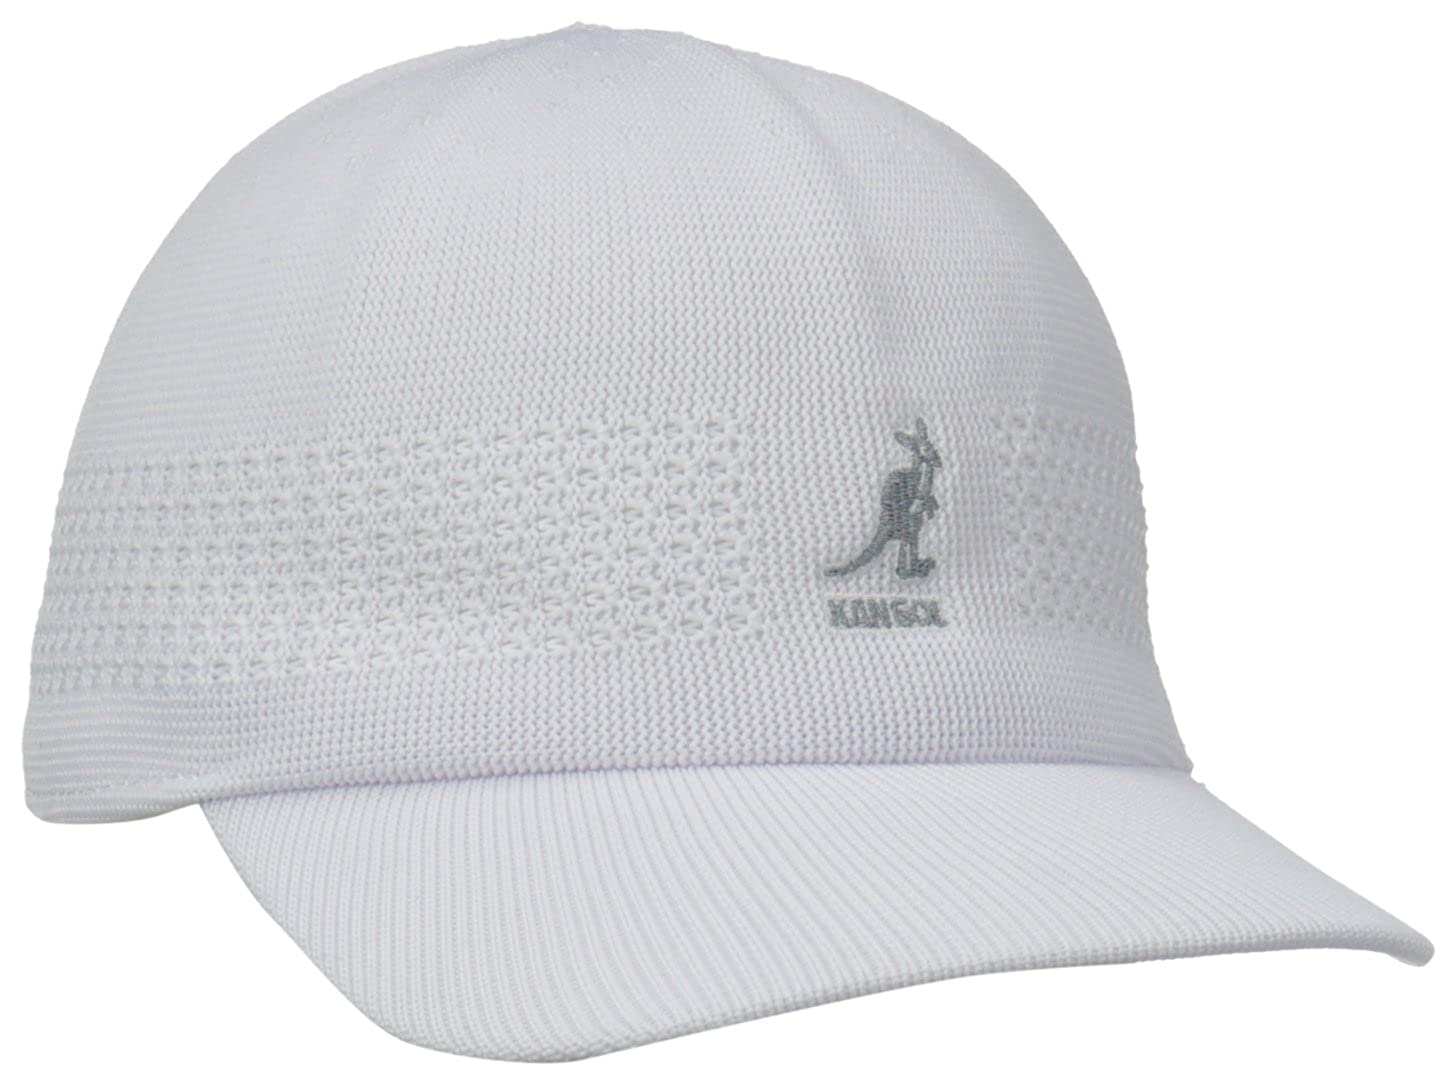 8f81c5894b4 Kangol Men s Tropic Ventair Space Cap  Amazon.in  Clothing   Accessories